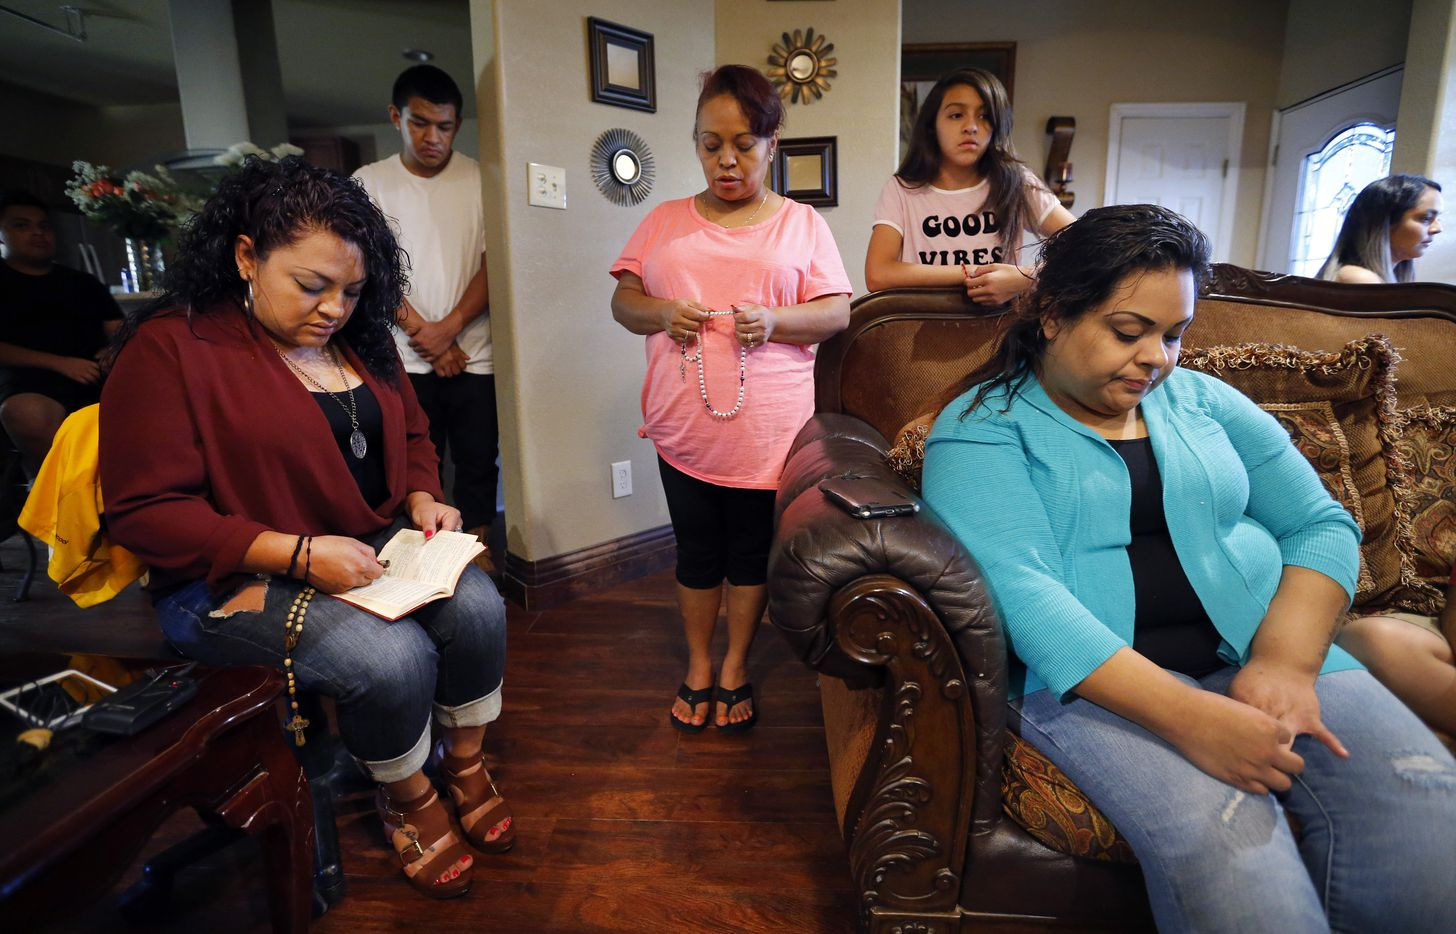 Ruddy Elizondo's aunt, Margarita Cardenas (left), leads the Rosary prayer at the family home in Garland, Friday, July 1, 2016. Ruddy's mother Alicia Elizondo (center) and cousin Elizabeth Cardenas (seated on couch) joined other family members in remembering him. Ruddy, a young man who was killed by a Garland police officer, is part of the increasing number of Texans who have been killed during arrests over the last 10 years statewide.